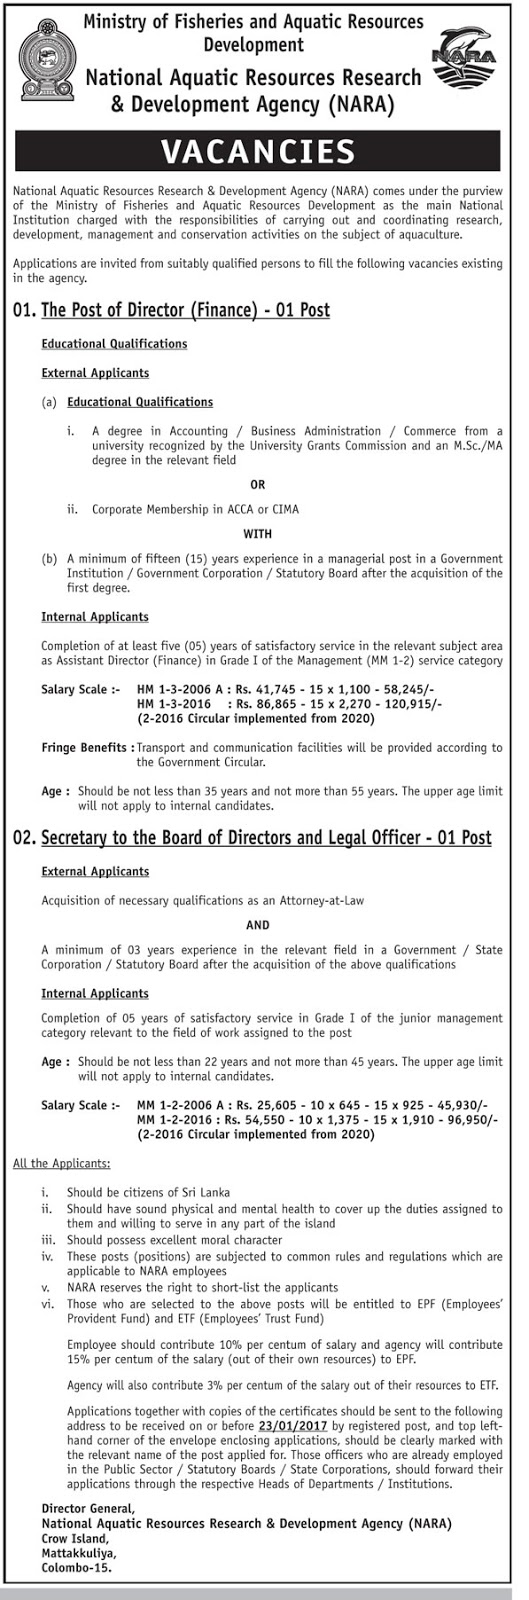 Education Agent Wanted From Sri Lanka Payment After Visa: Director (Finance), Secretary To The Board Directors